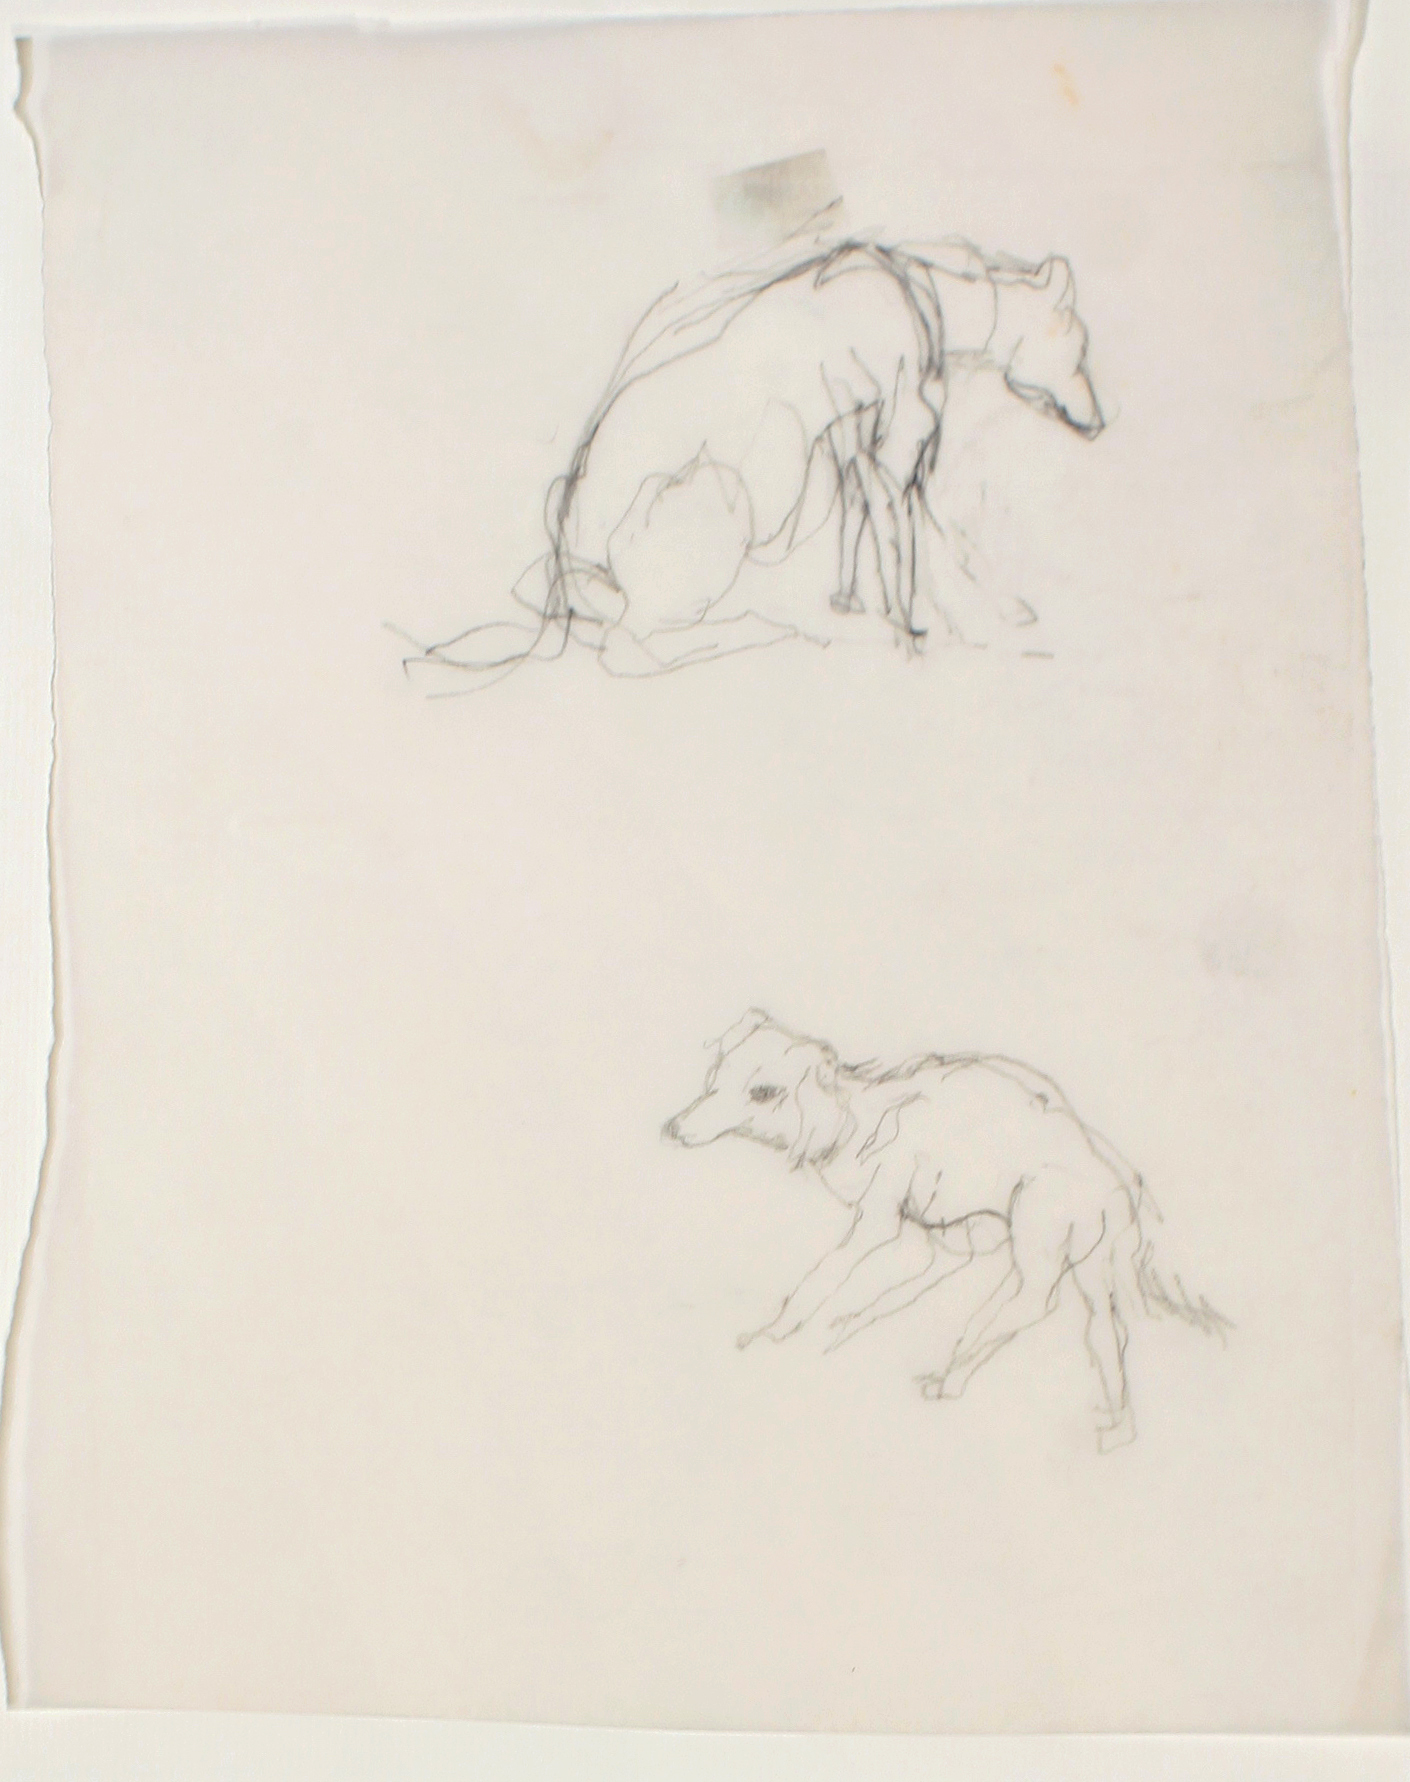 1980s_Two_Dogs_pencil_on_paper_10x8in_WPF594.jpg